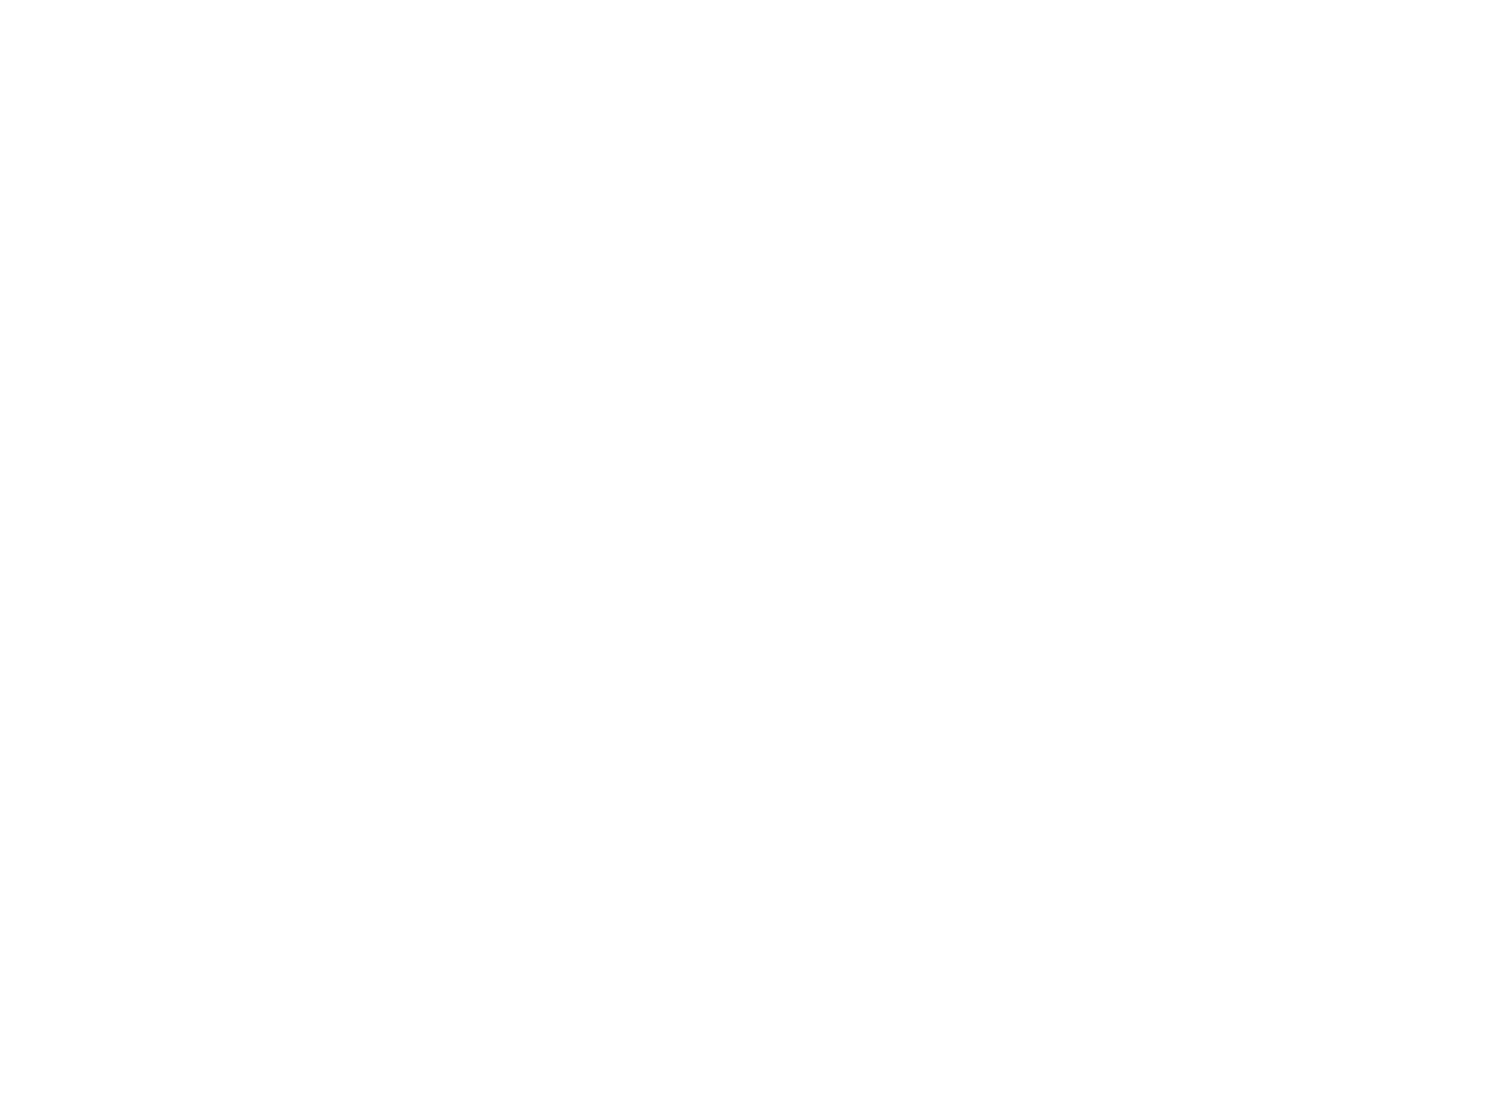 Guide Office